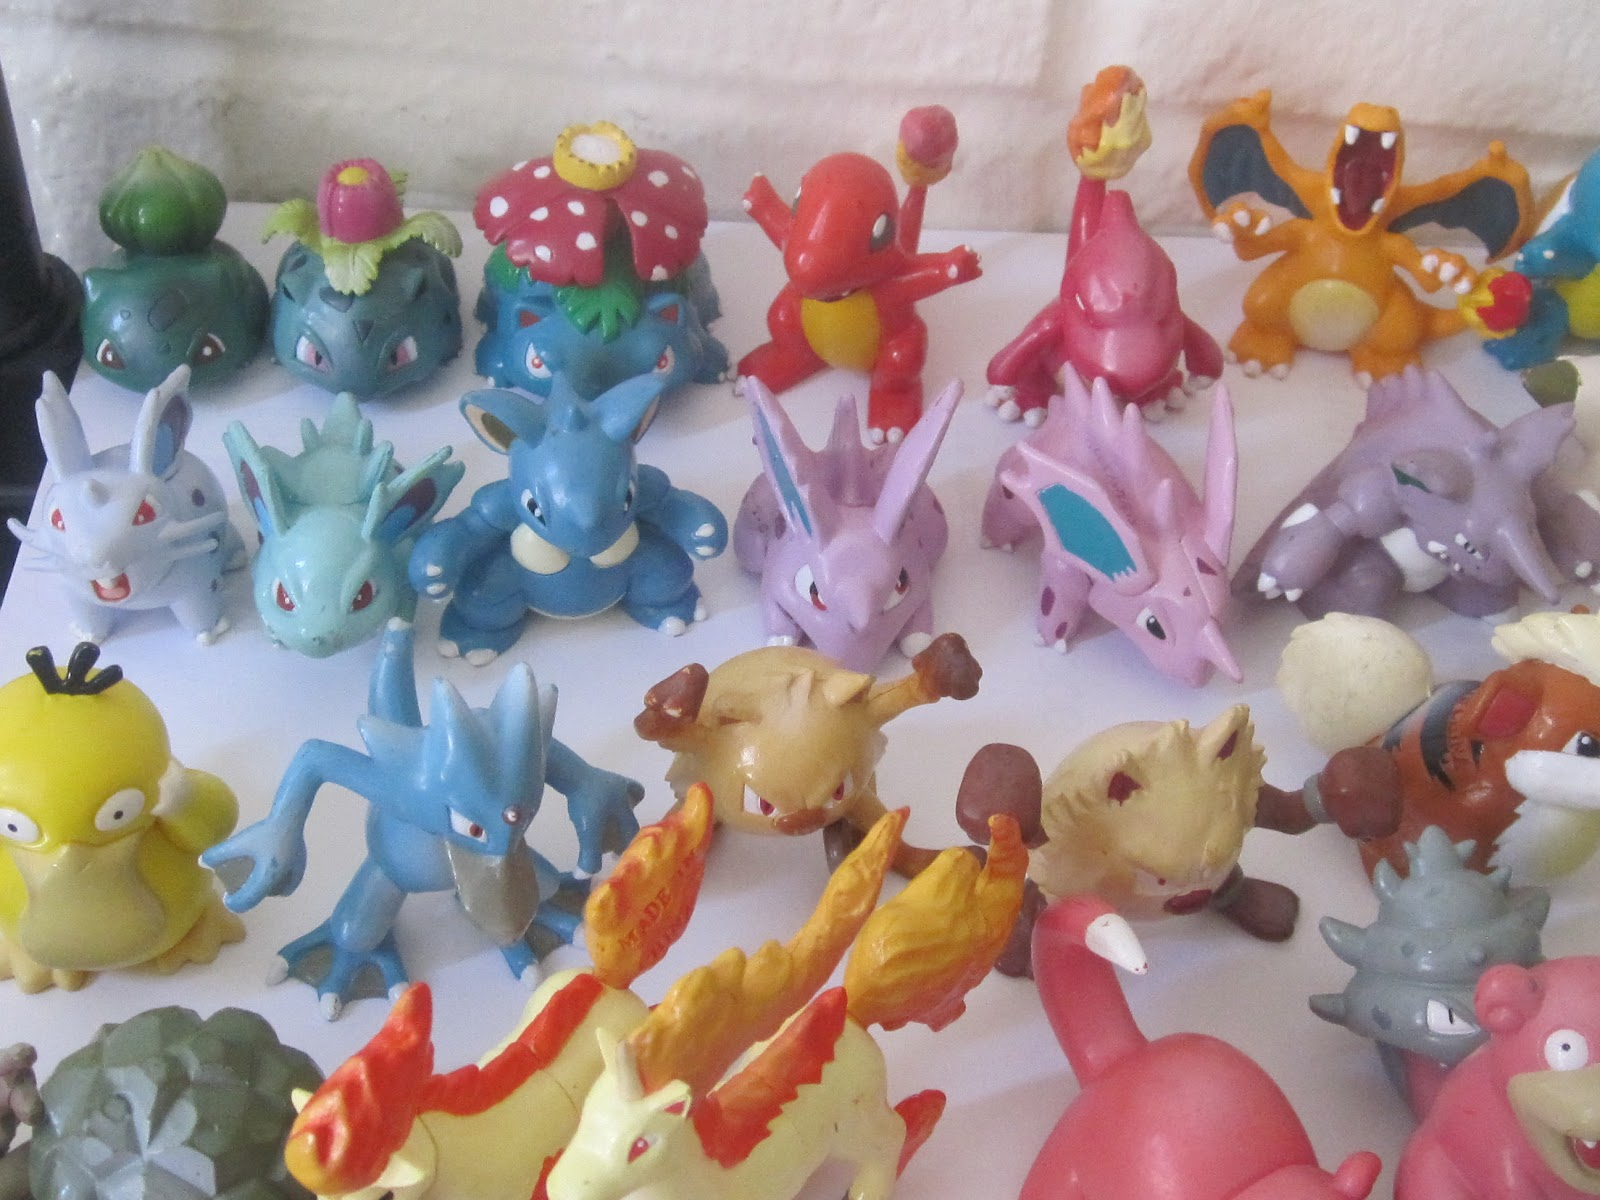 What Is My Paypal Email >> Tomy Pokemon Figures (100% Authentic): Tomy pokemon First Generation Figures (151 figures ...